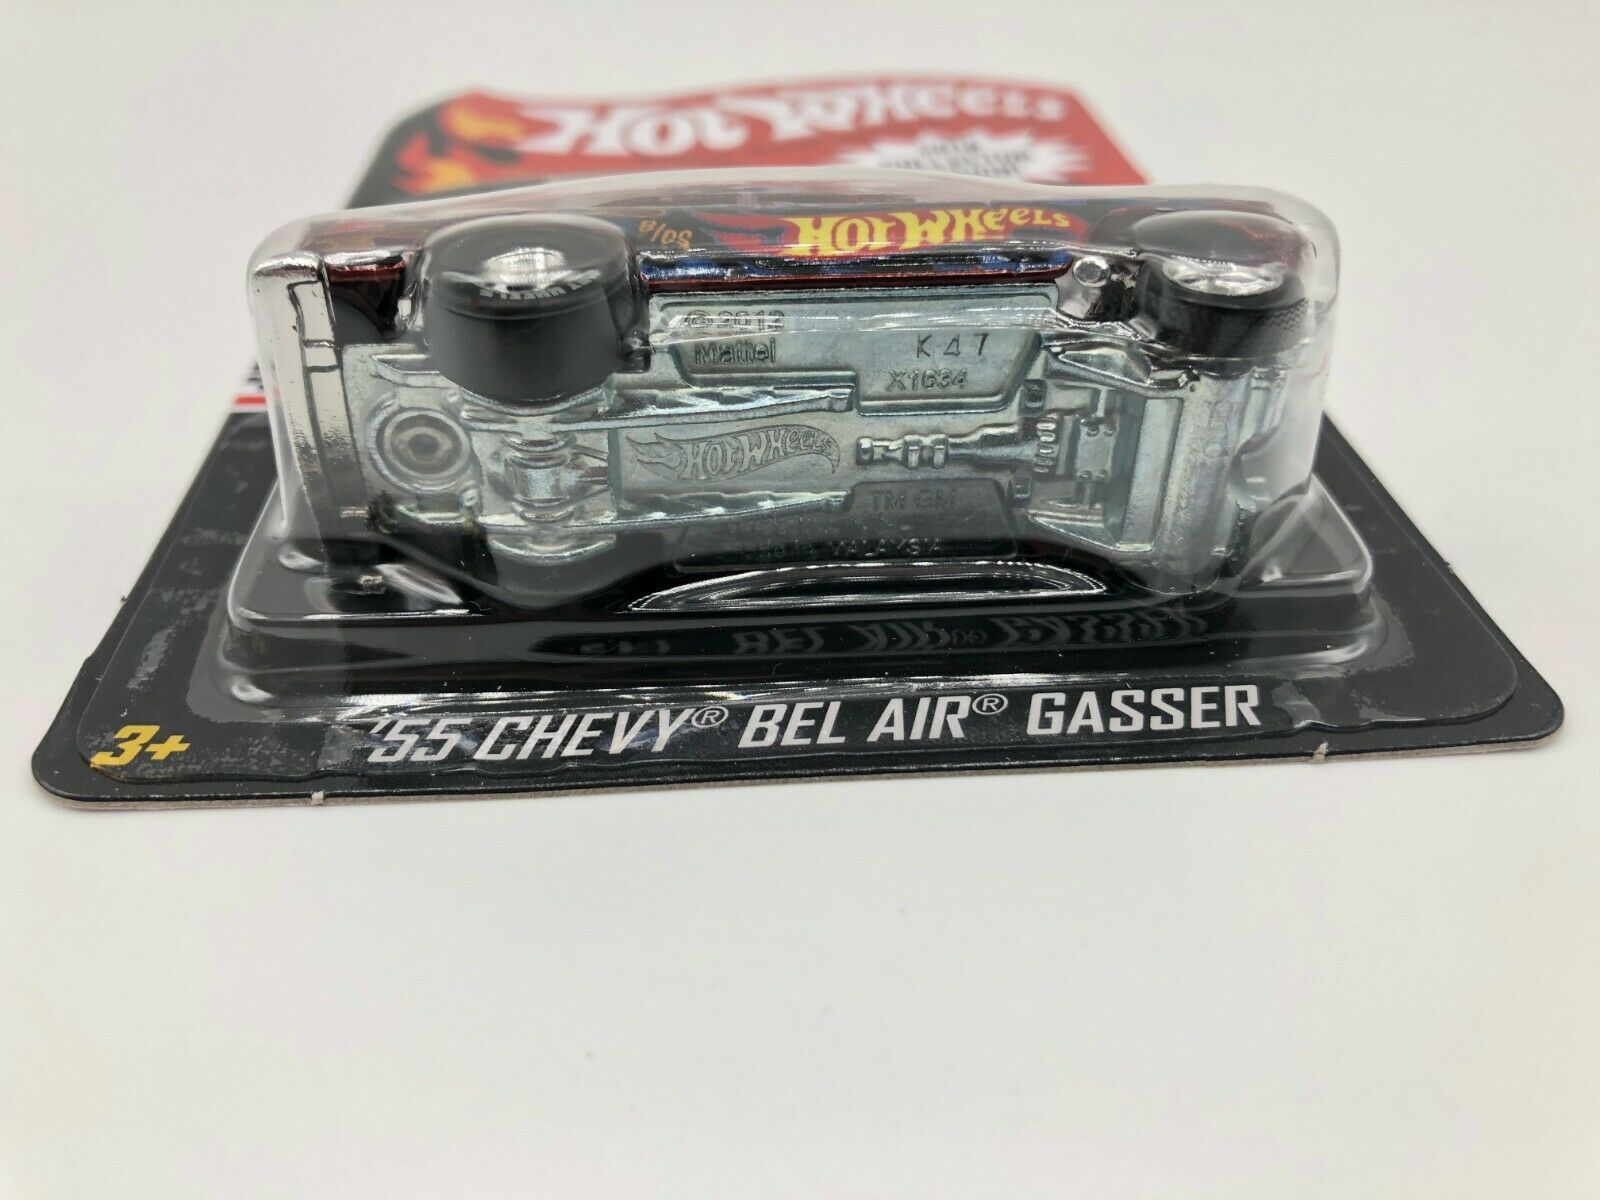 Hot Wheels 2018 Collectors Edition 55 55 55 Chevy Bel Air Gasser NIBP 5610af